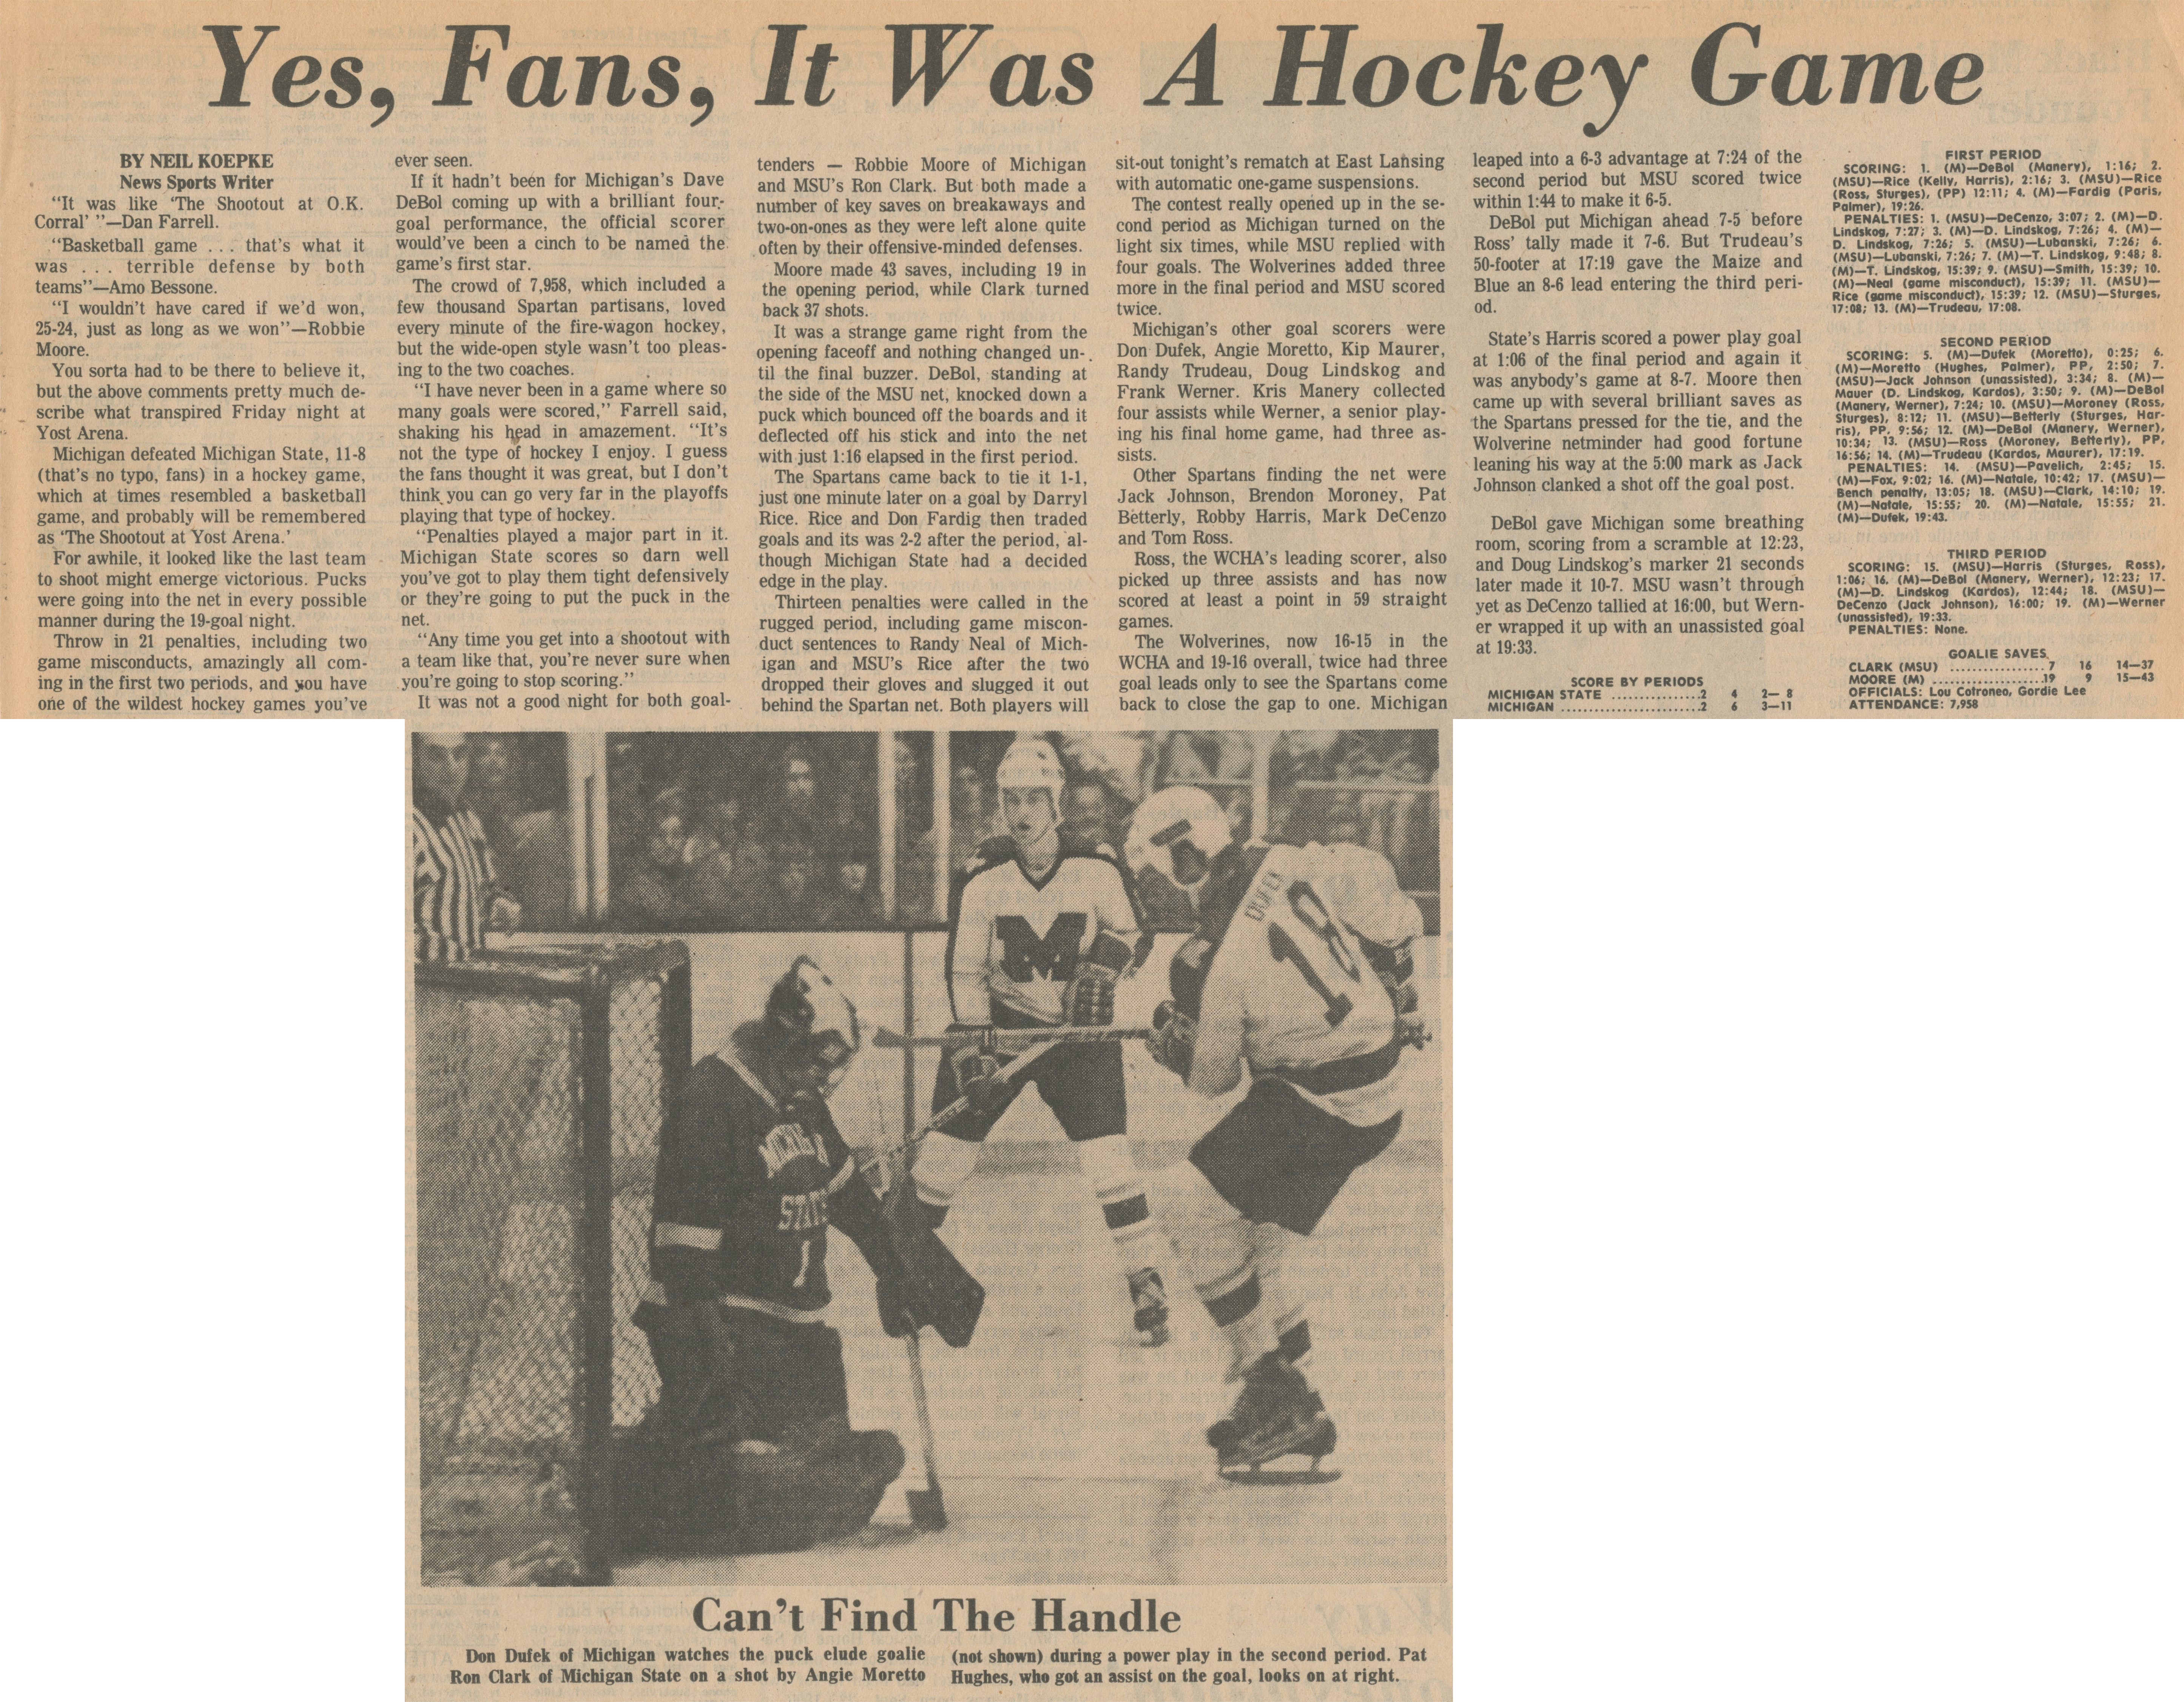 Yes, Fans, It Was A Hockey Game image